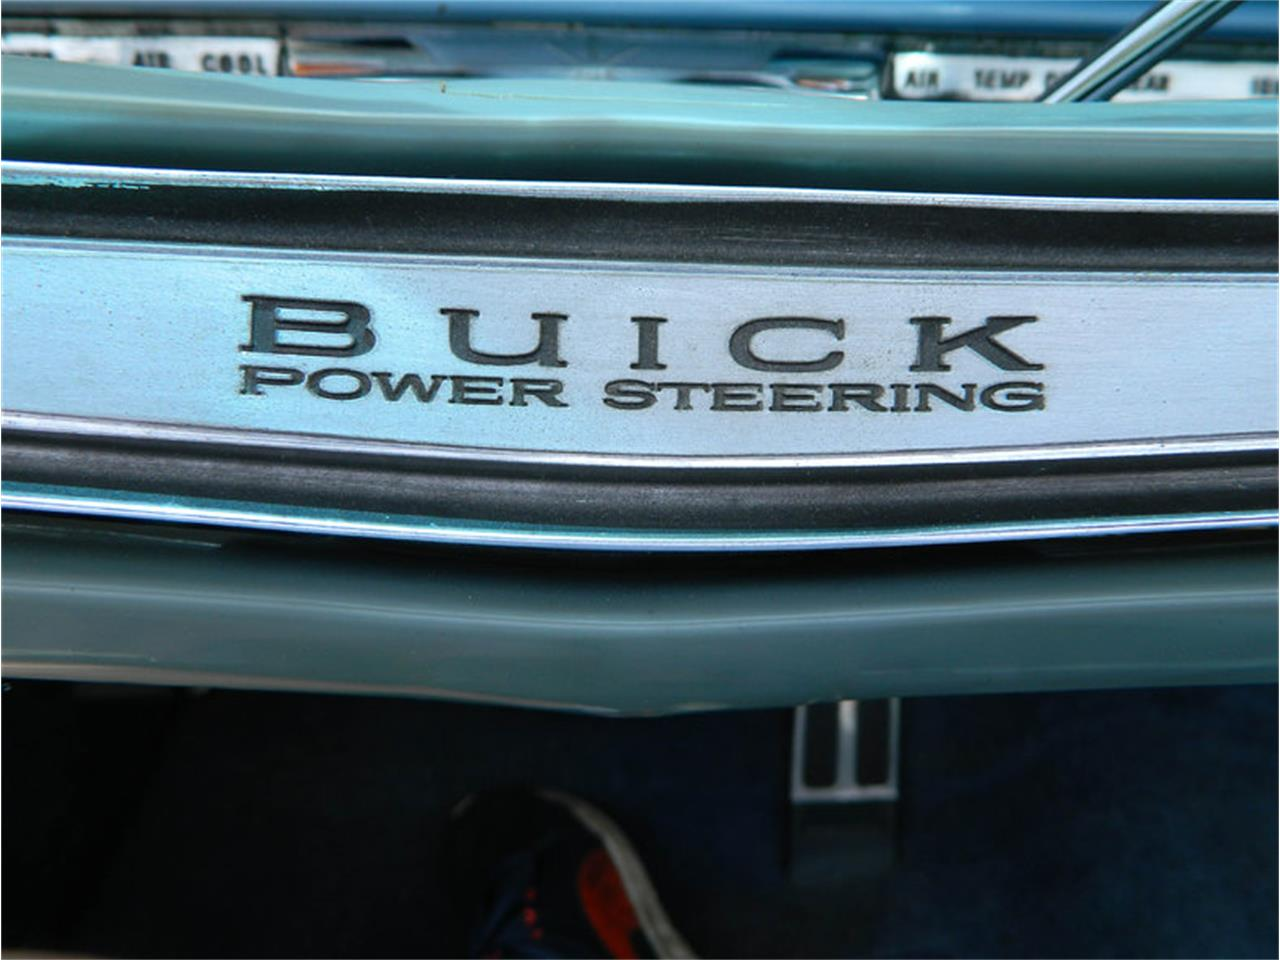 Large Picture of 1962 Buick Electra 225 located in Fort Lauderdale Florida - $59,900.00 - M8SN